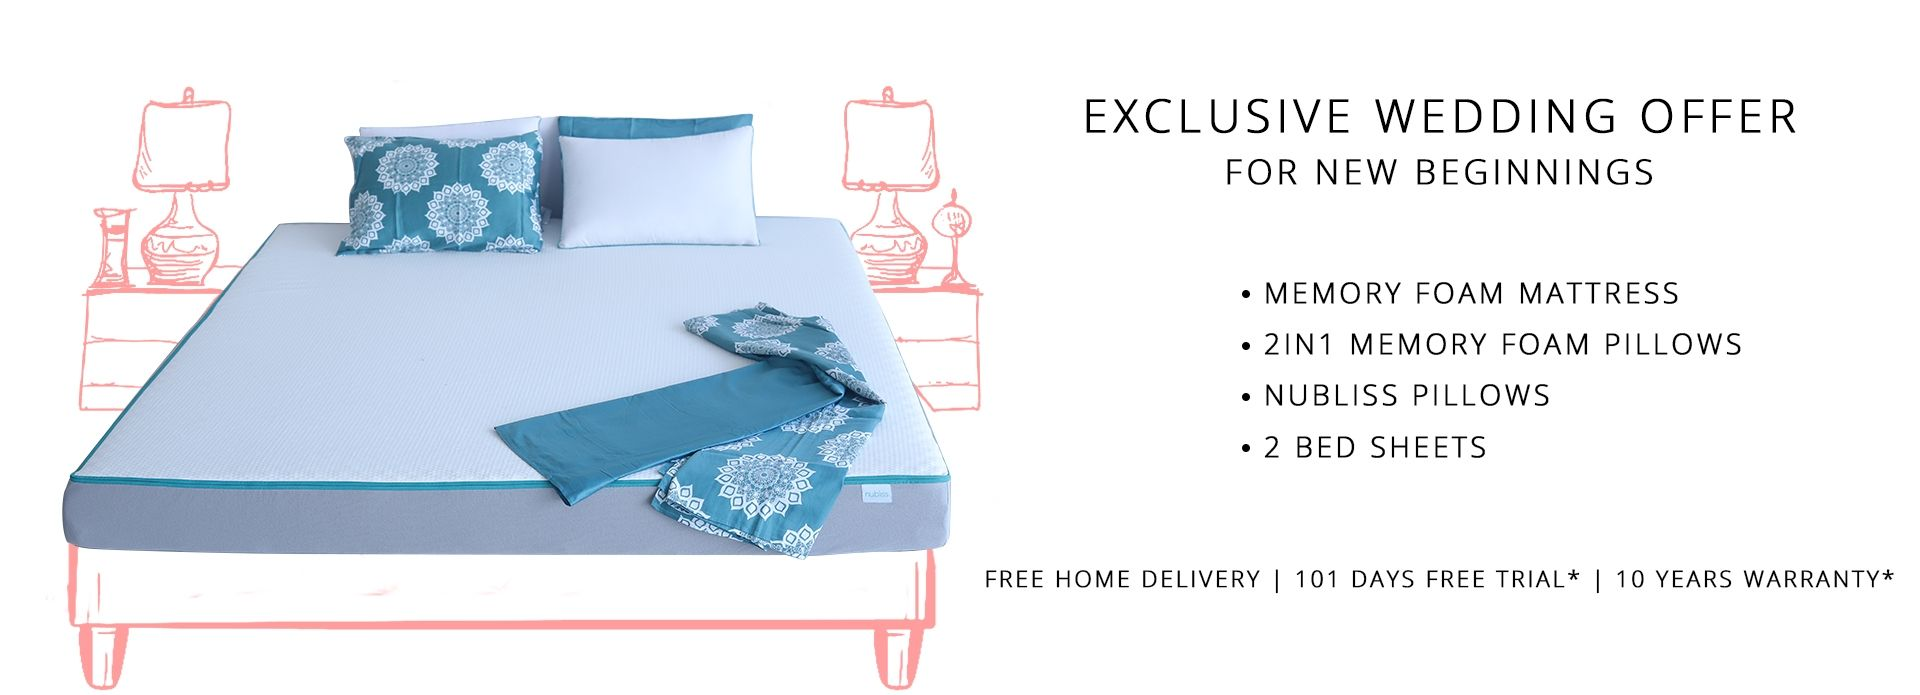 Nubliss Memory Foam Mattress In Chennai Is Delivered At Your Door